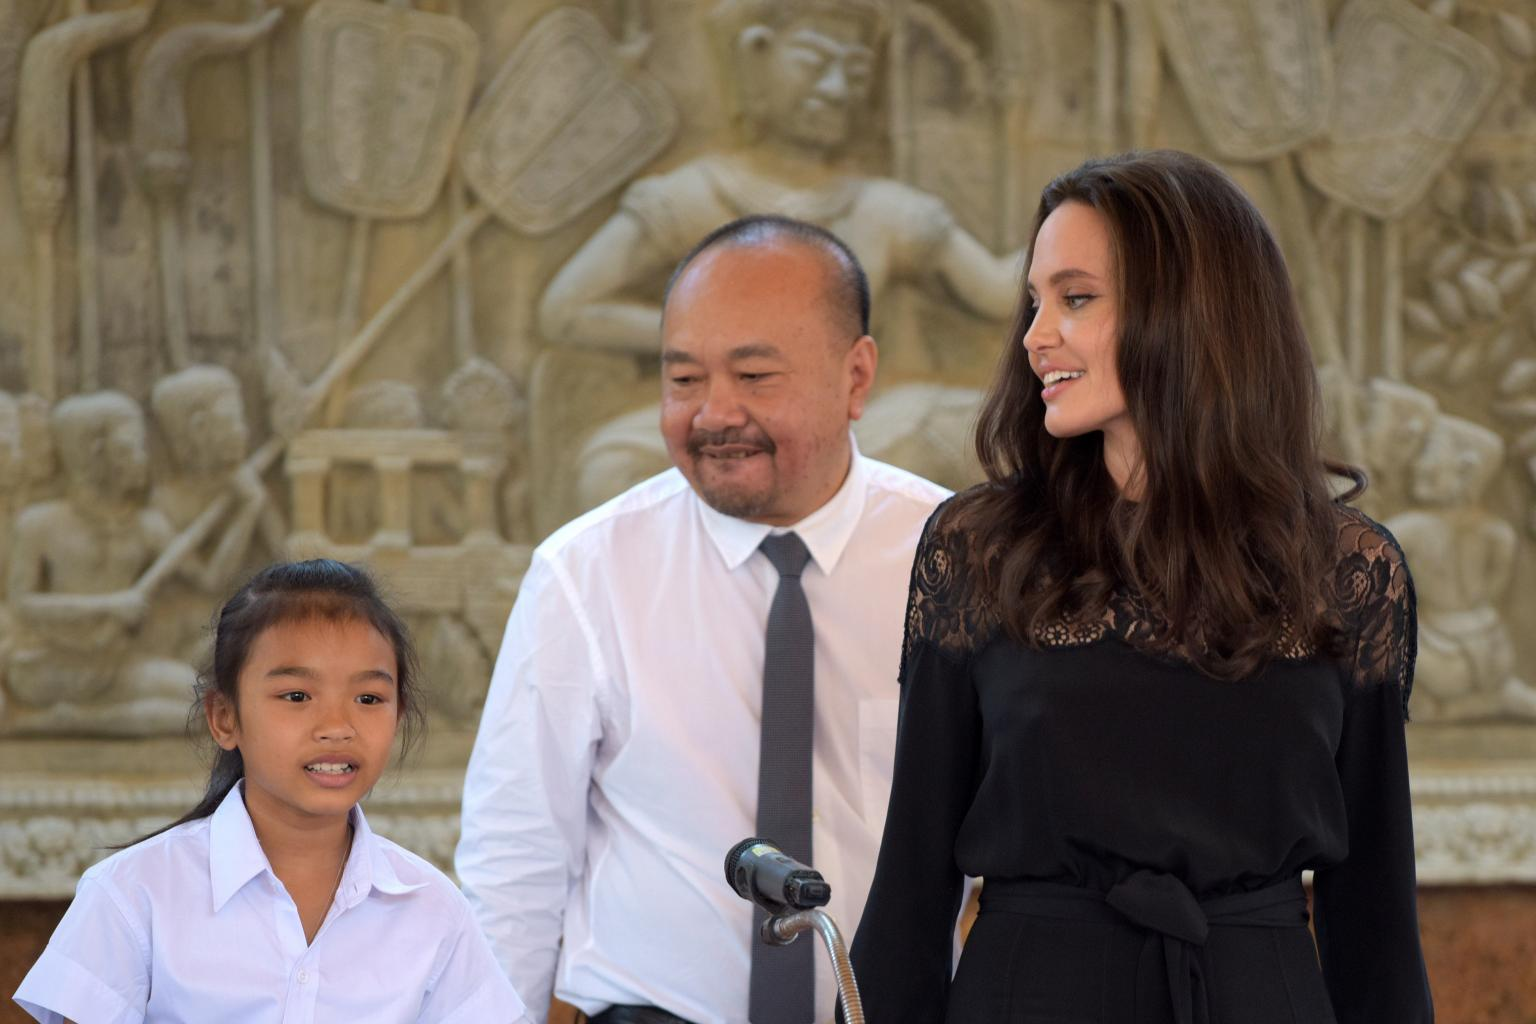 Angelina Jolie Fires Back After Backlash Over Controversial Casting Methods: 'I Would Be Outraged If This Had Happened'